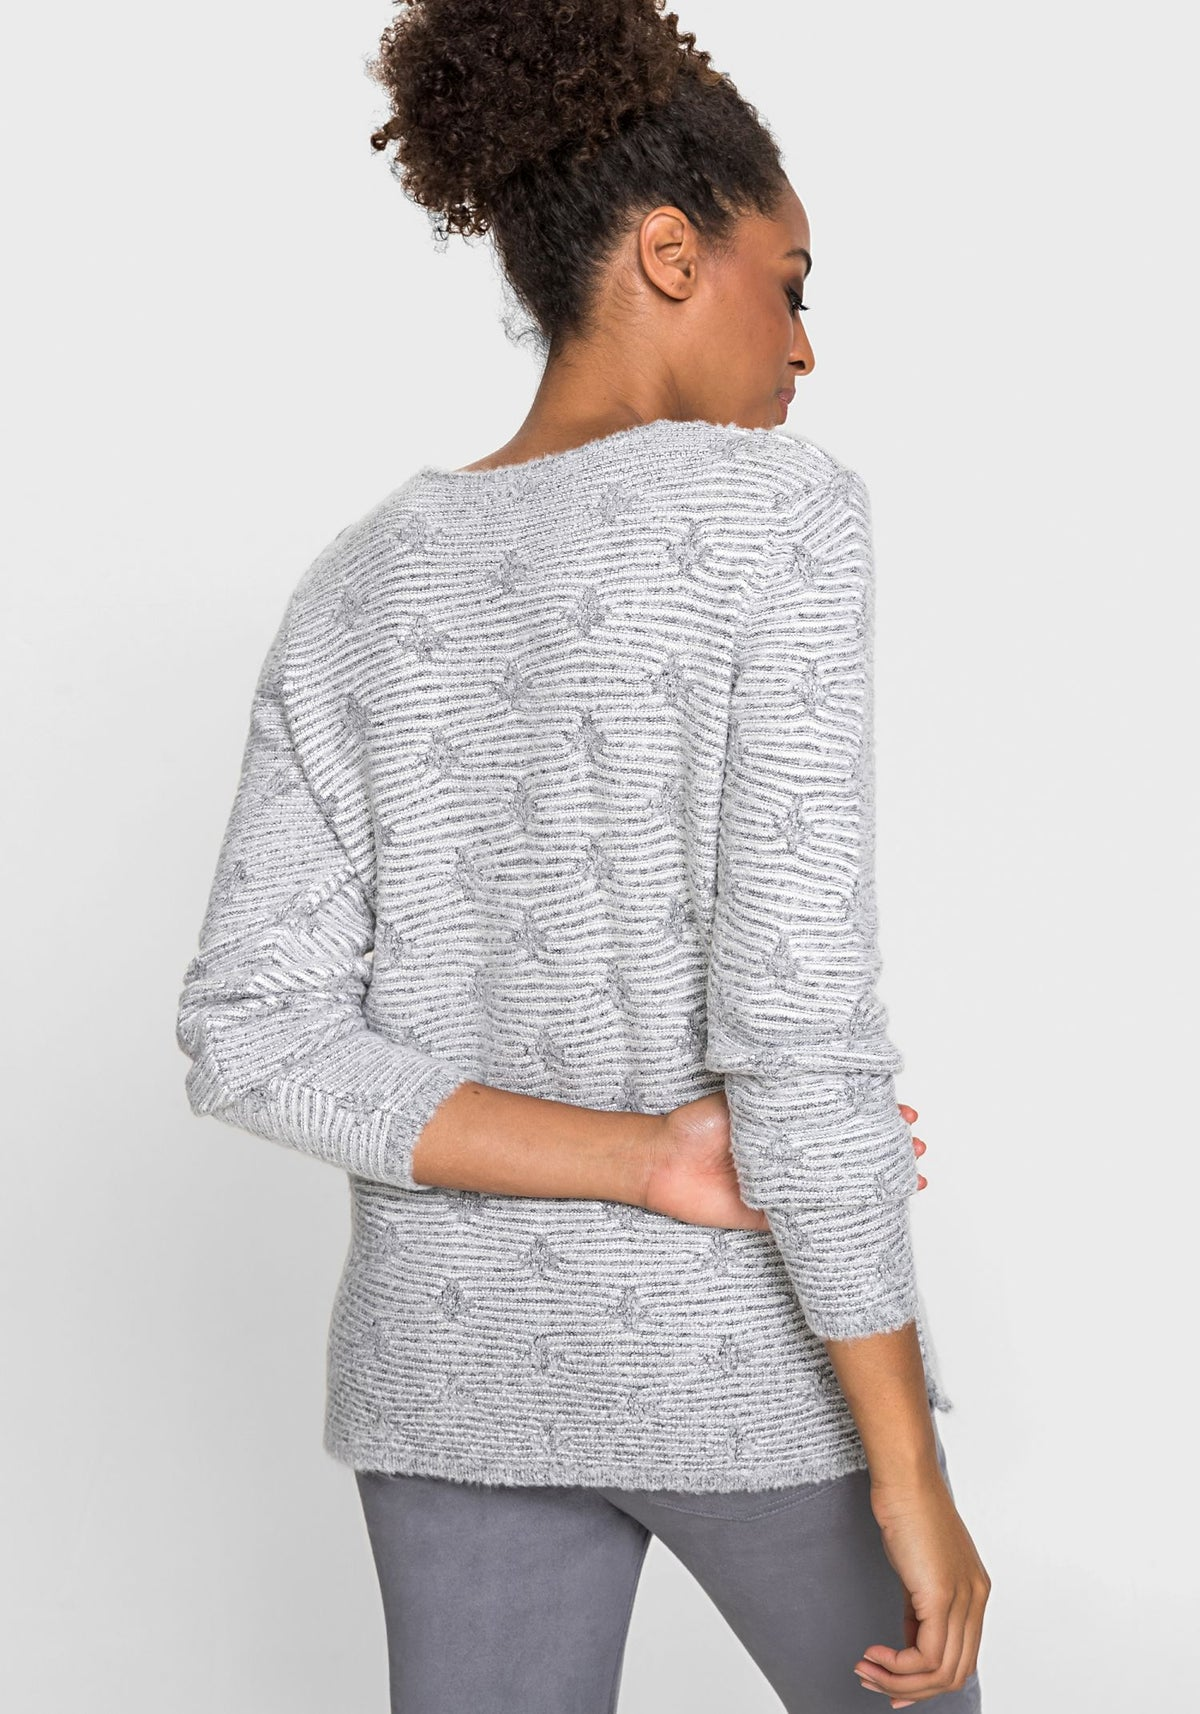 Long Sleeve Rounded V-Neck Bloucle Knit Pullover (Henny Fit)